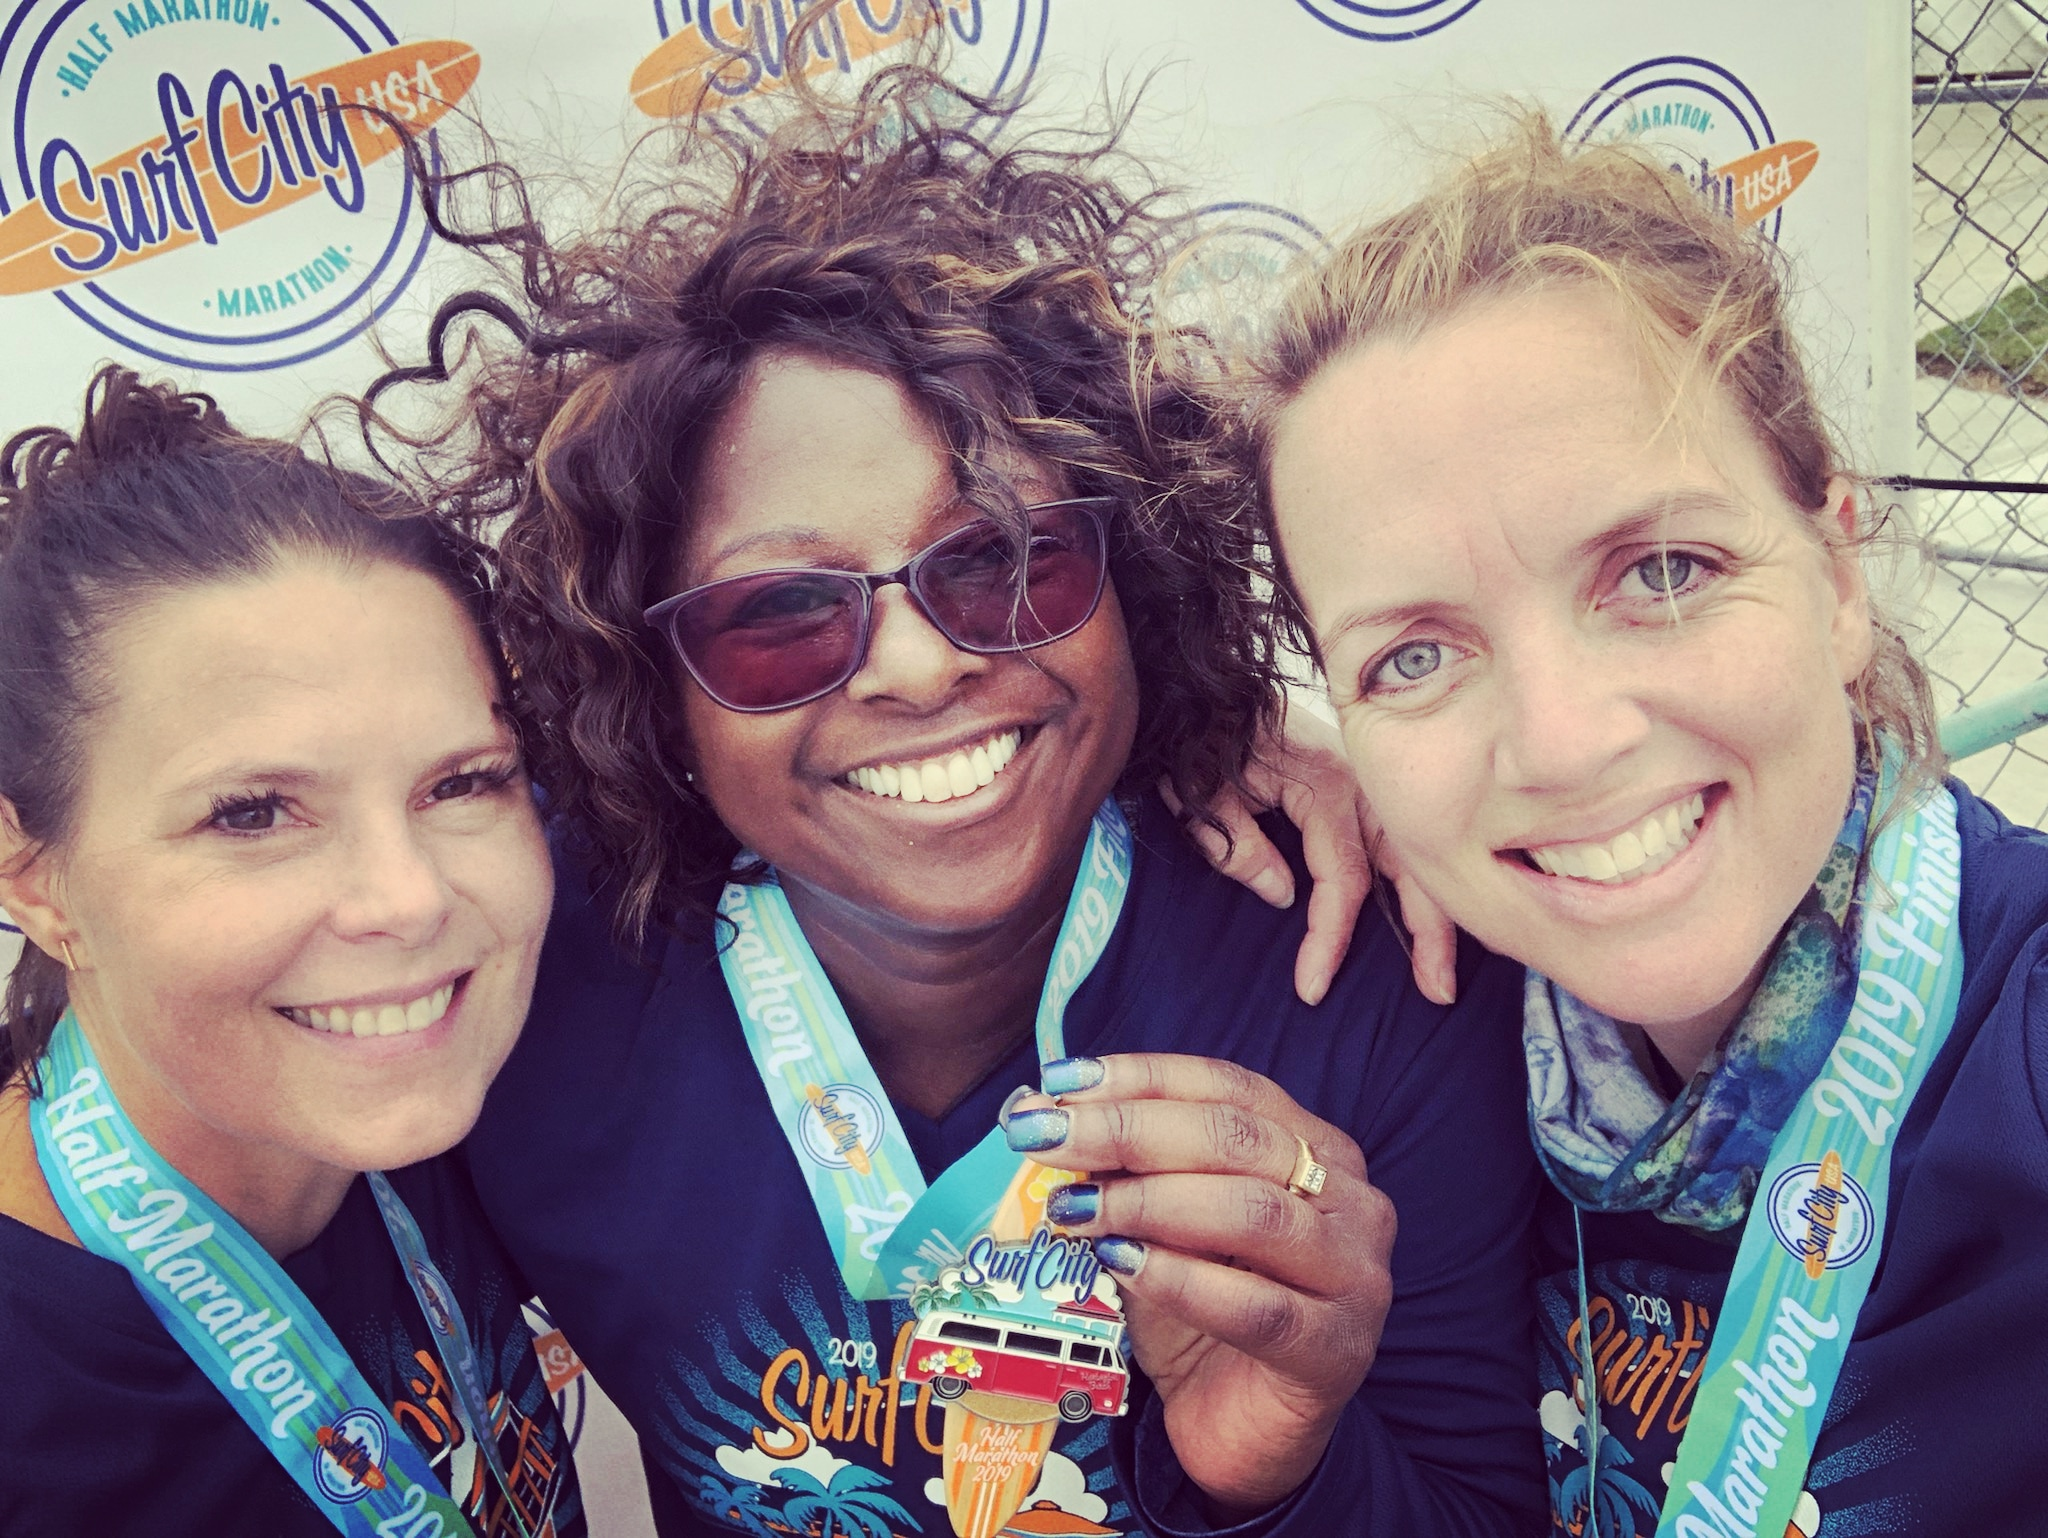 Melissa Mueller (left) and Deb Johnston (right) hold up their first half-marathon medals with Rahbin Shyne.